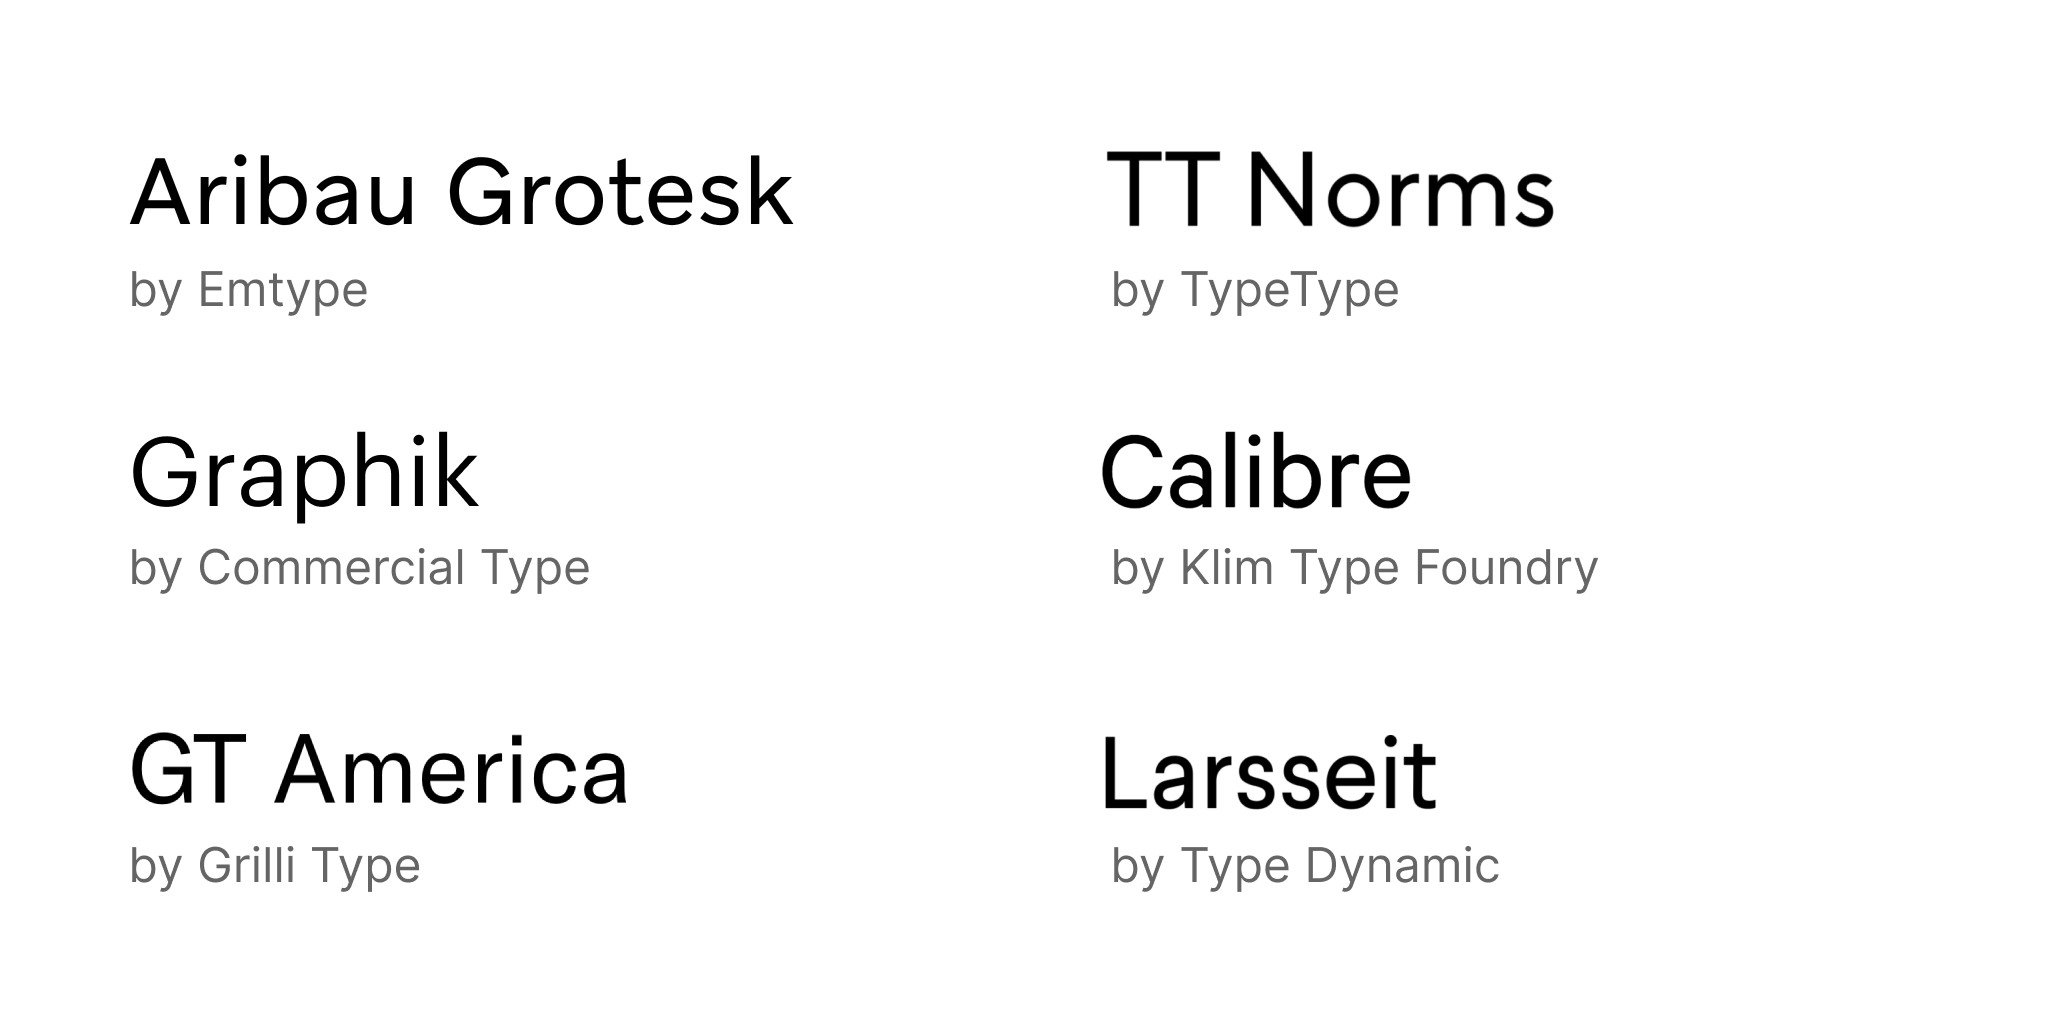 Steve Schoger On Twitter I Love A Lot Of The Popular Fonts Available On Google Fonts But They Also Tend To Get Overused If You Have A Budget Using A High Quality Commercial Font Will Make A Significant Difference On Your Projects Here Are A Bunch Of